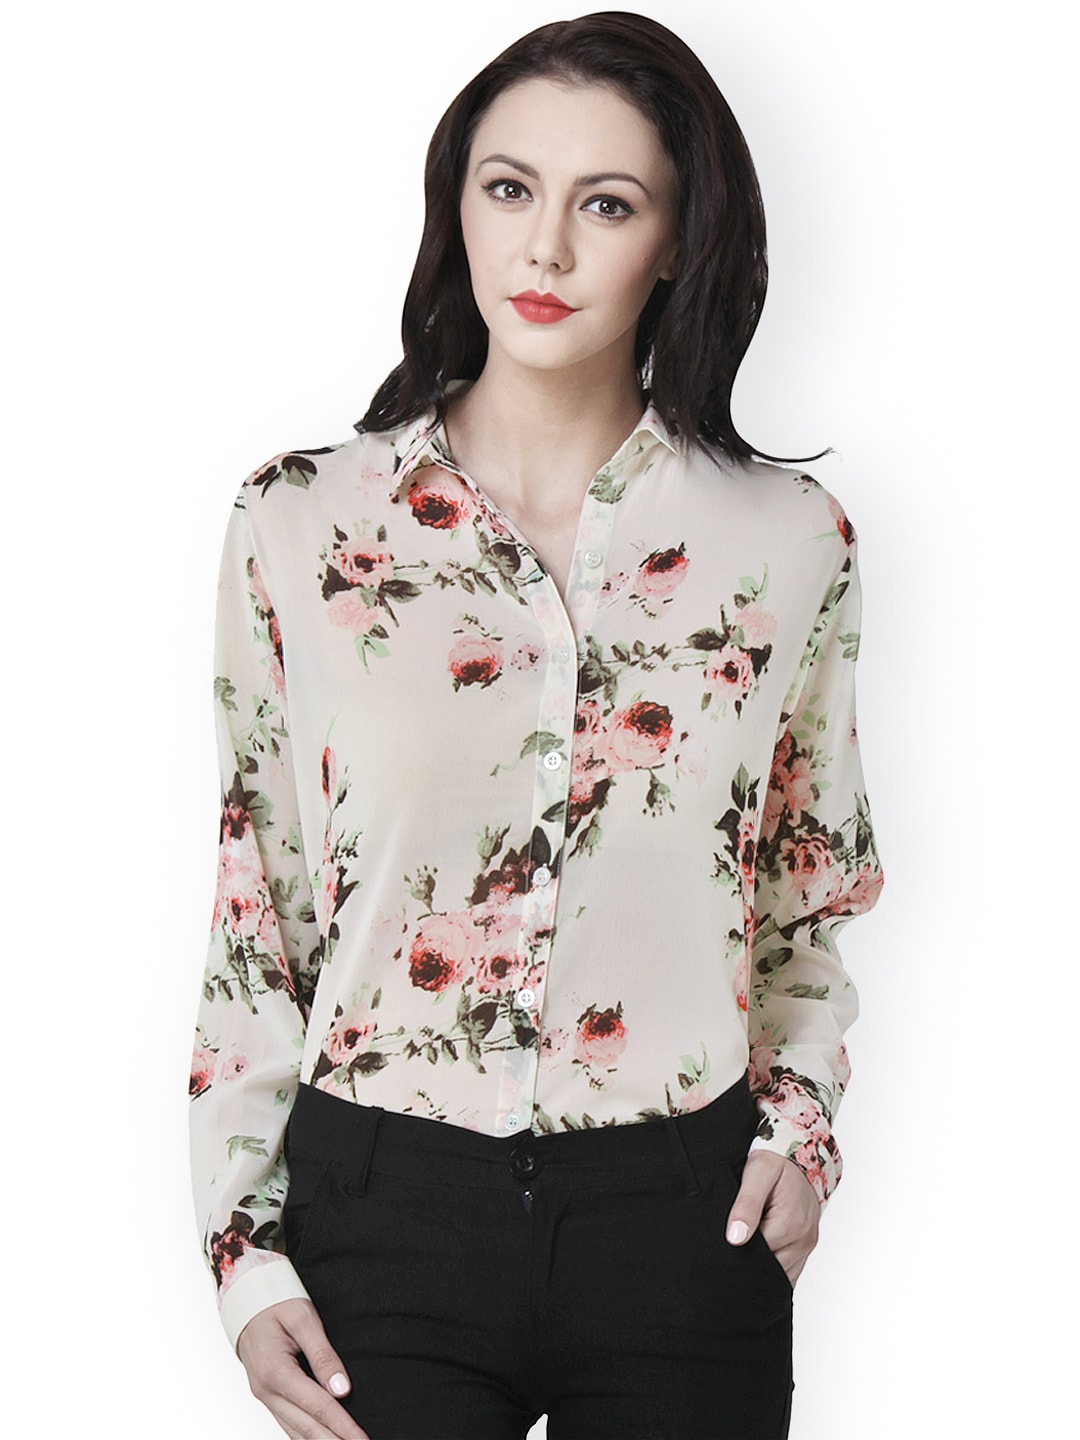 Find great deals on eBay for womens printed shirts. Shop with confidence.